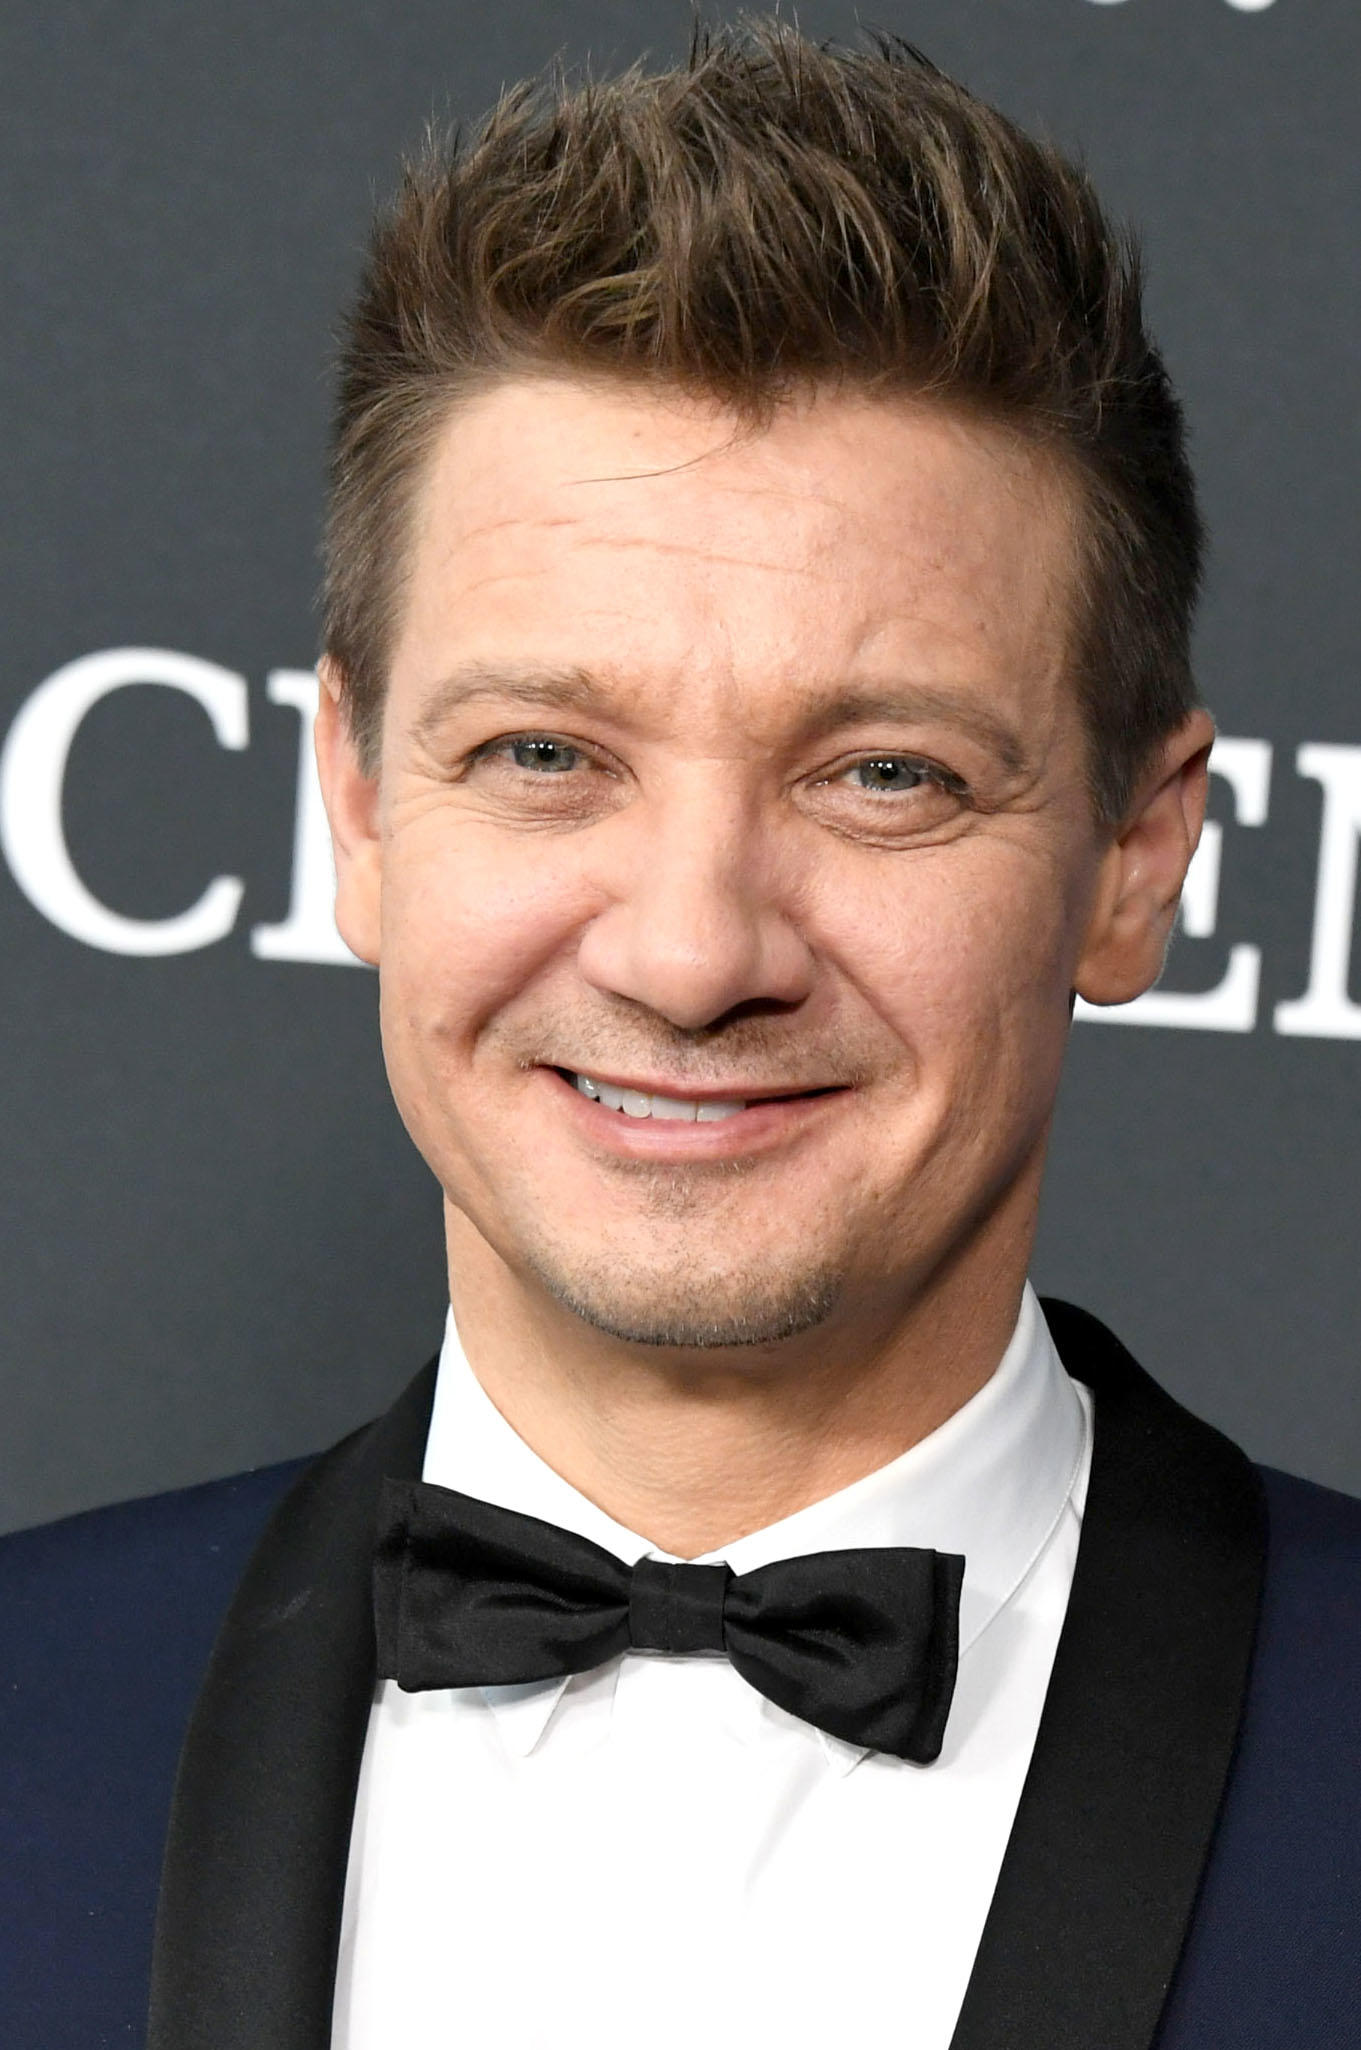 Jeremy Renner at the world premiere of